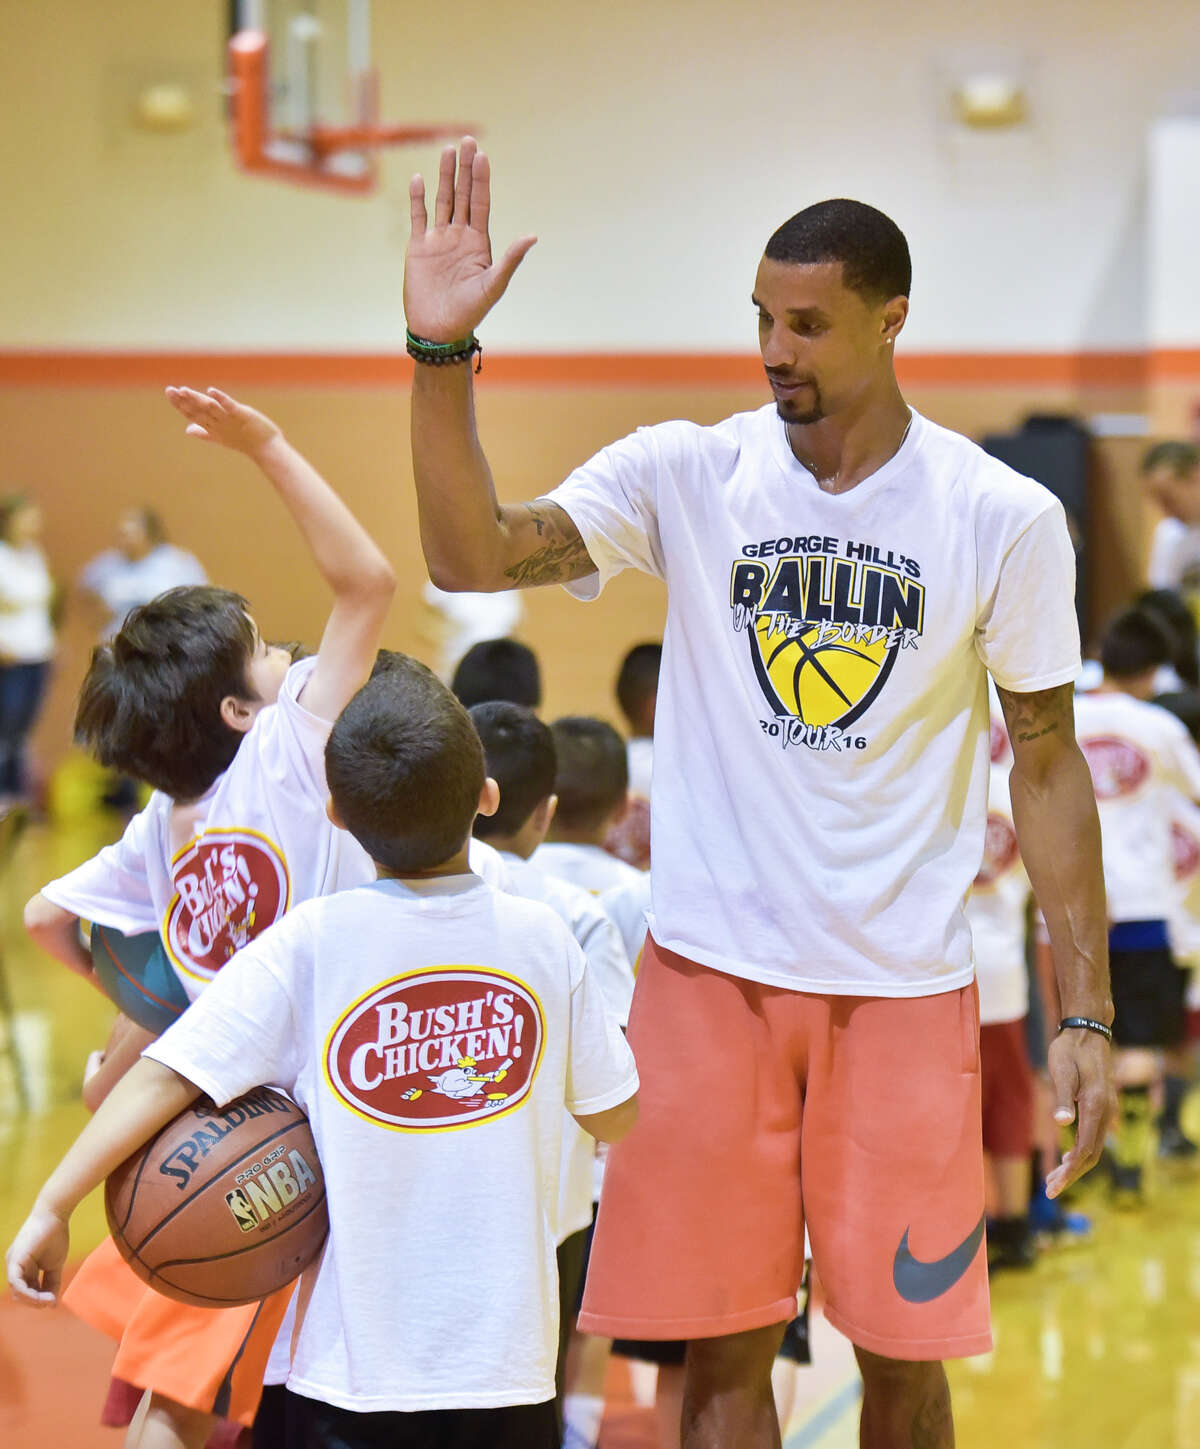 George Hill gives high fives to the kids in attendance during George Hill's Ballin' On The Border Basketball Camp at United High School on Monday afternoon.